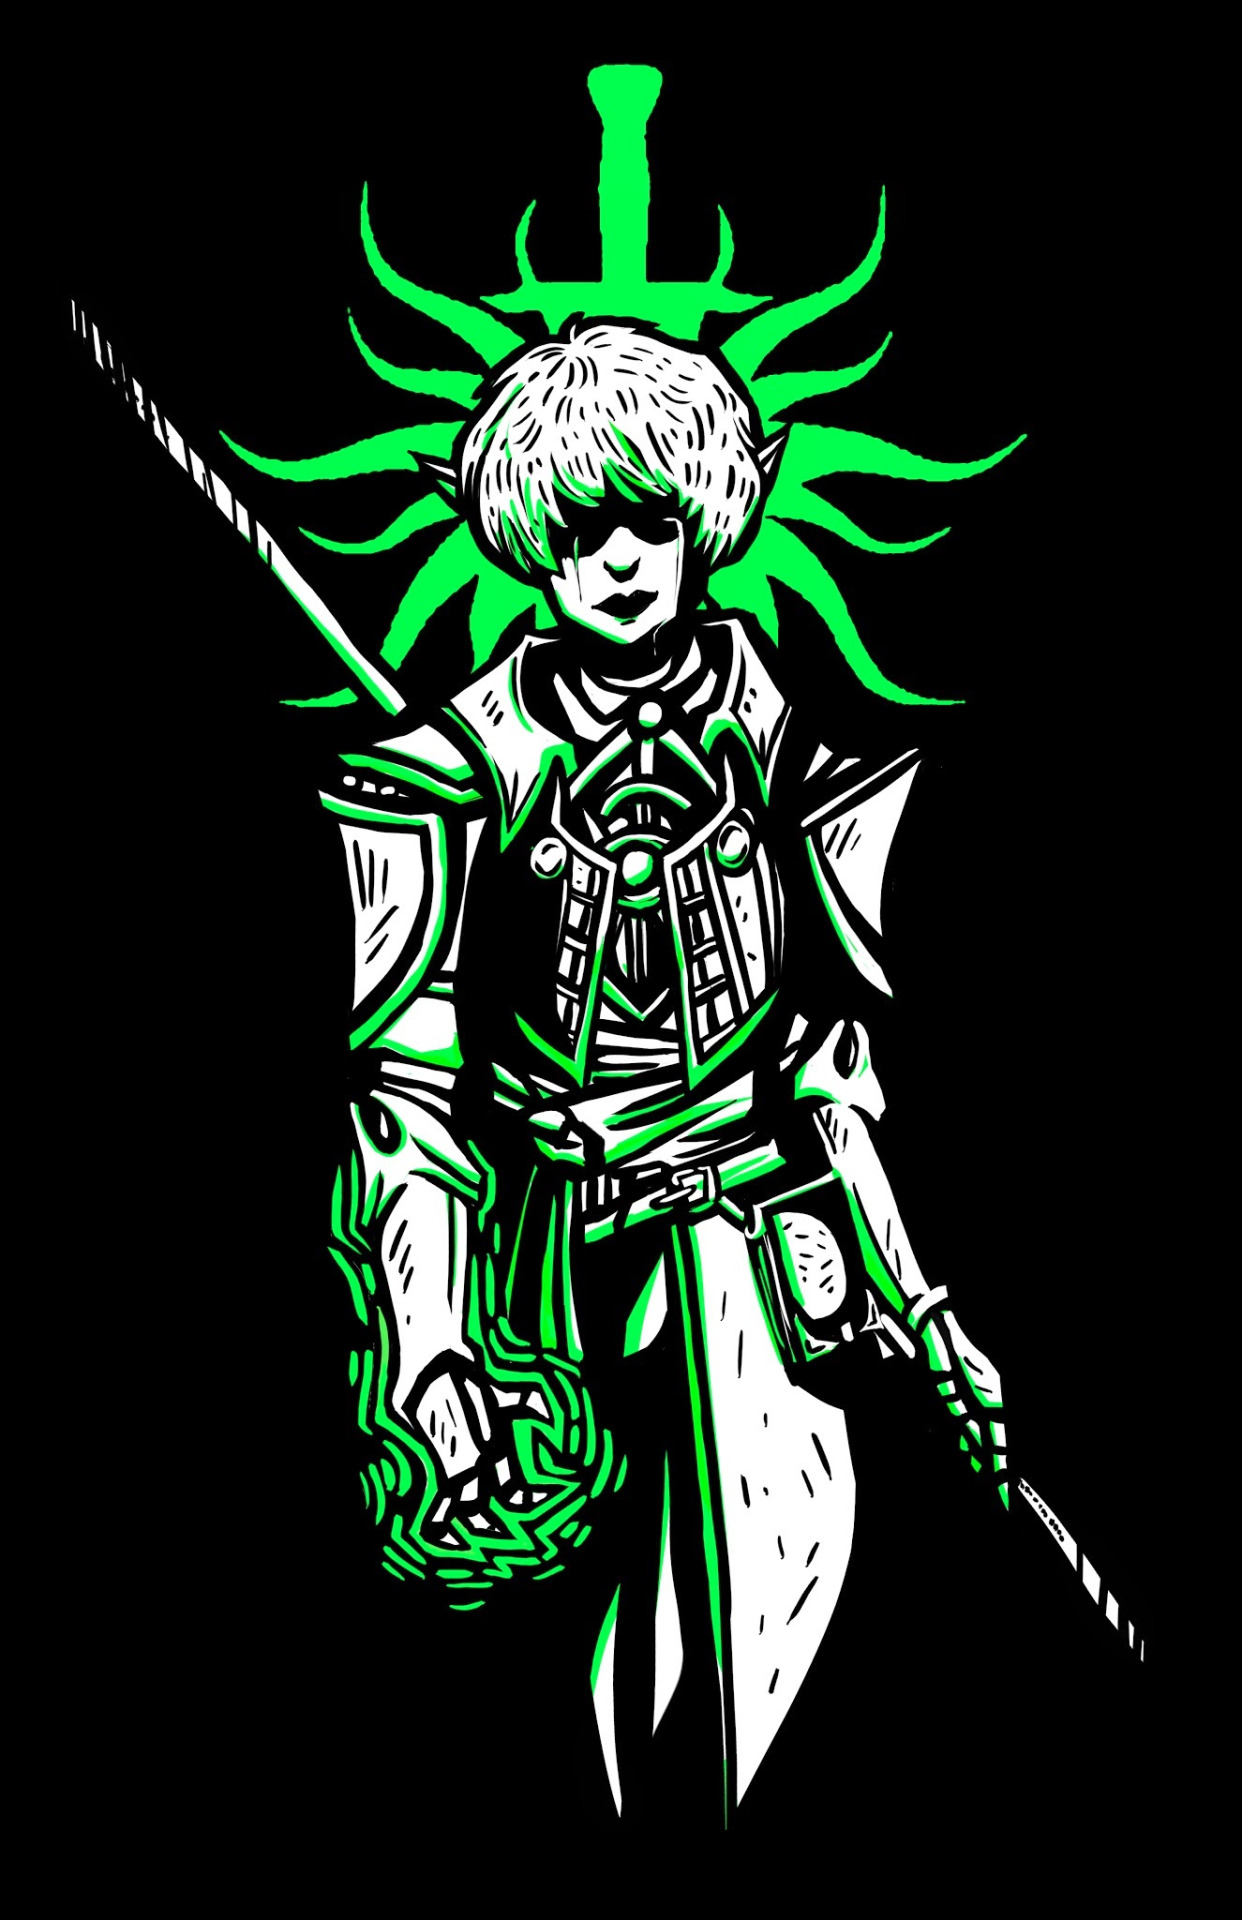 Fan art for the game Dragon Age: Inquisition.